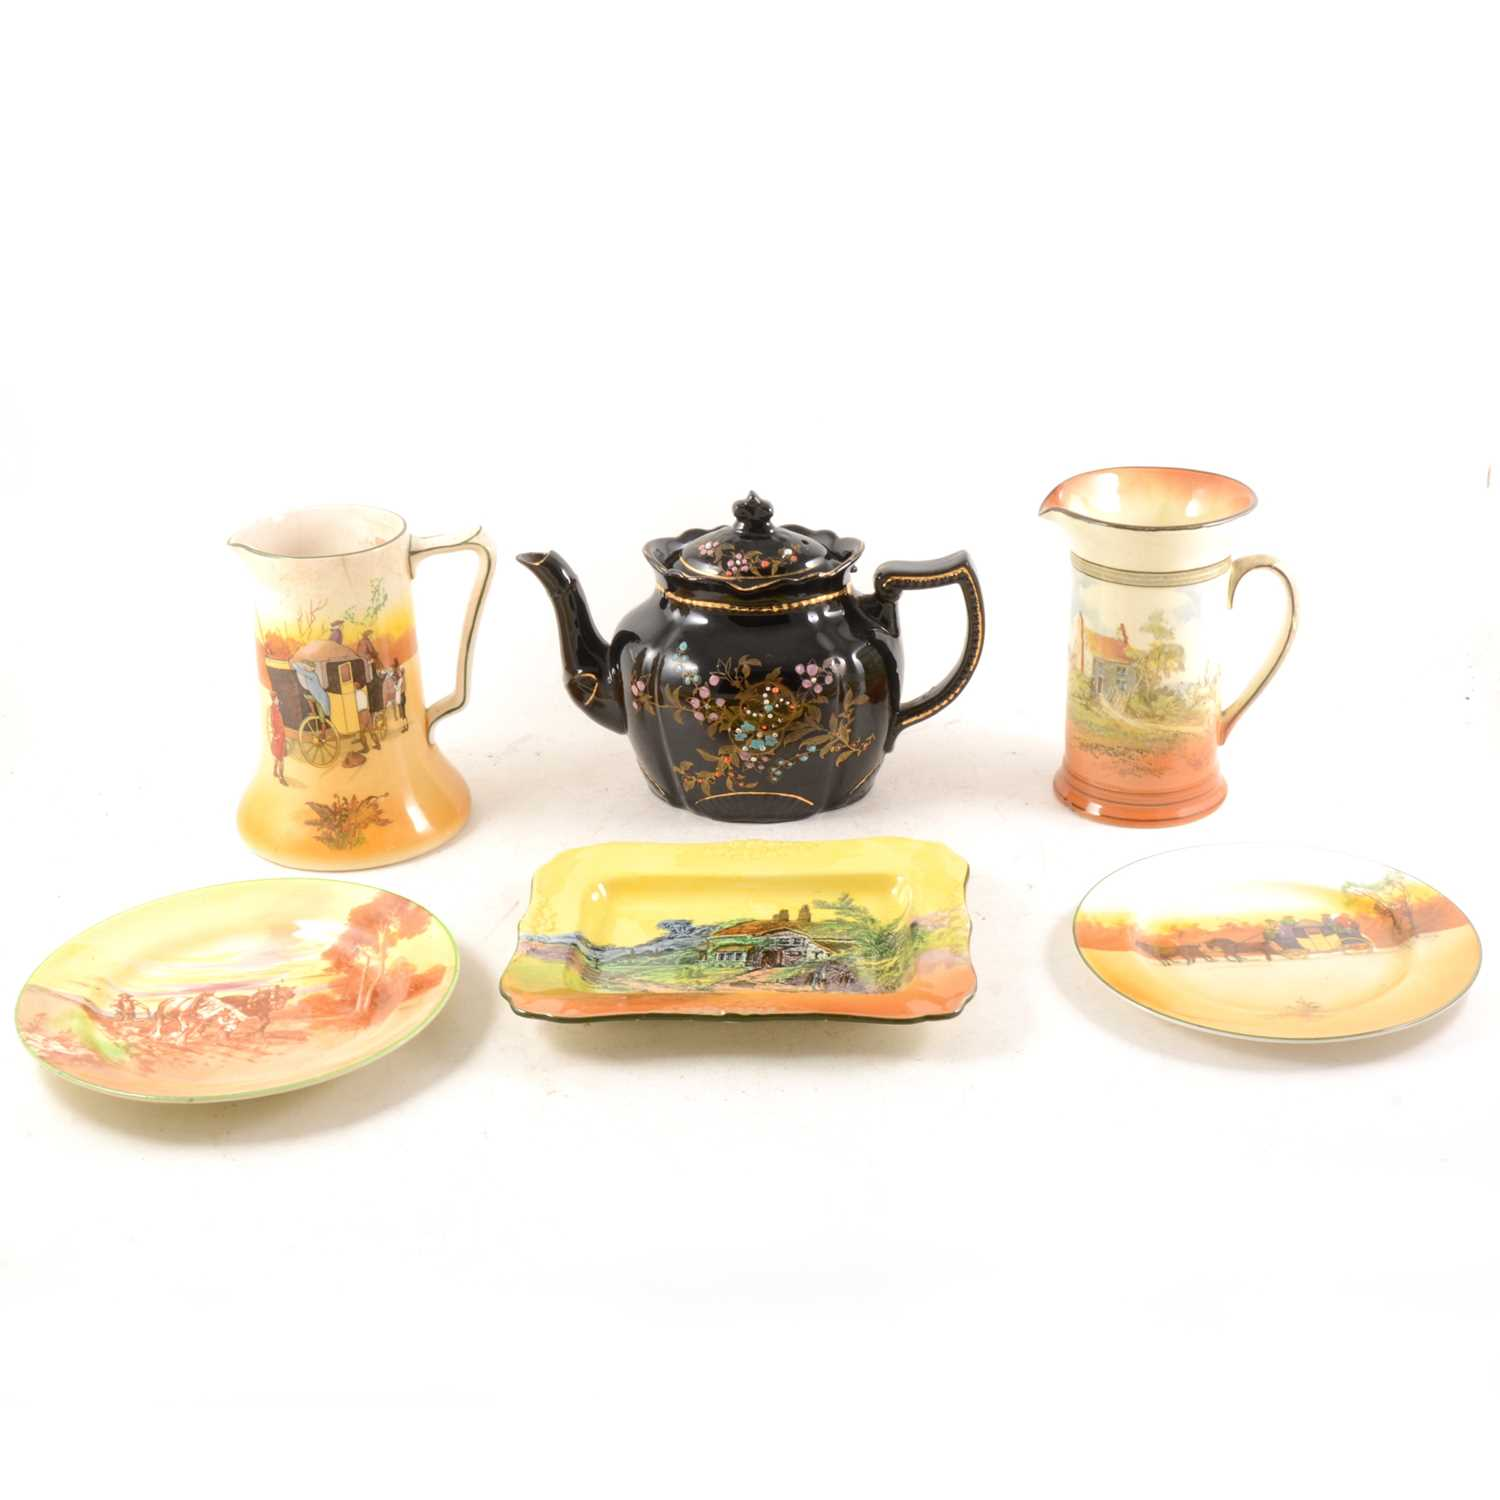 Lot 41-A quantity of Royal Doulton seriesware, teapots and other ceramics.